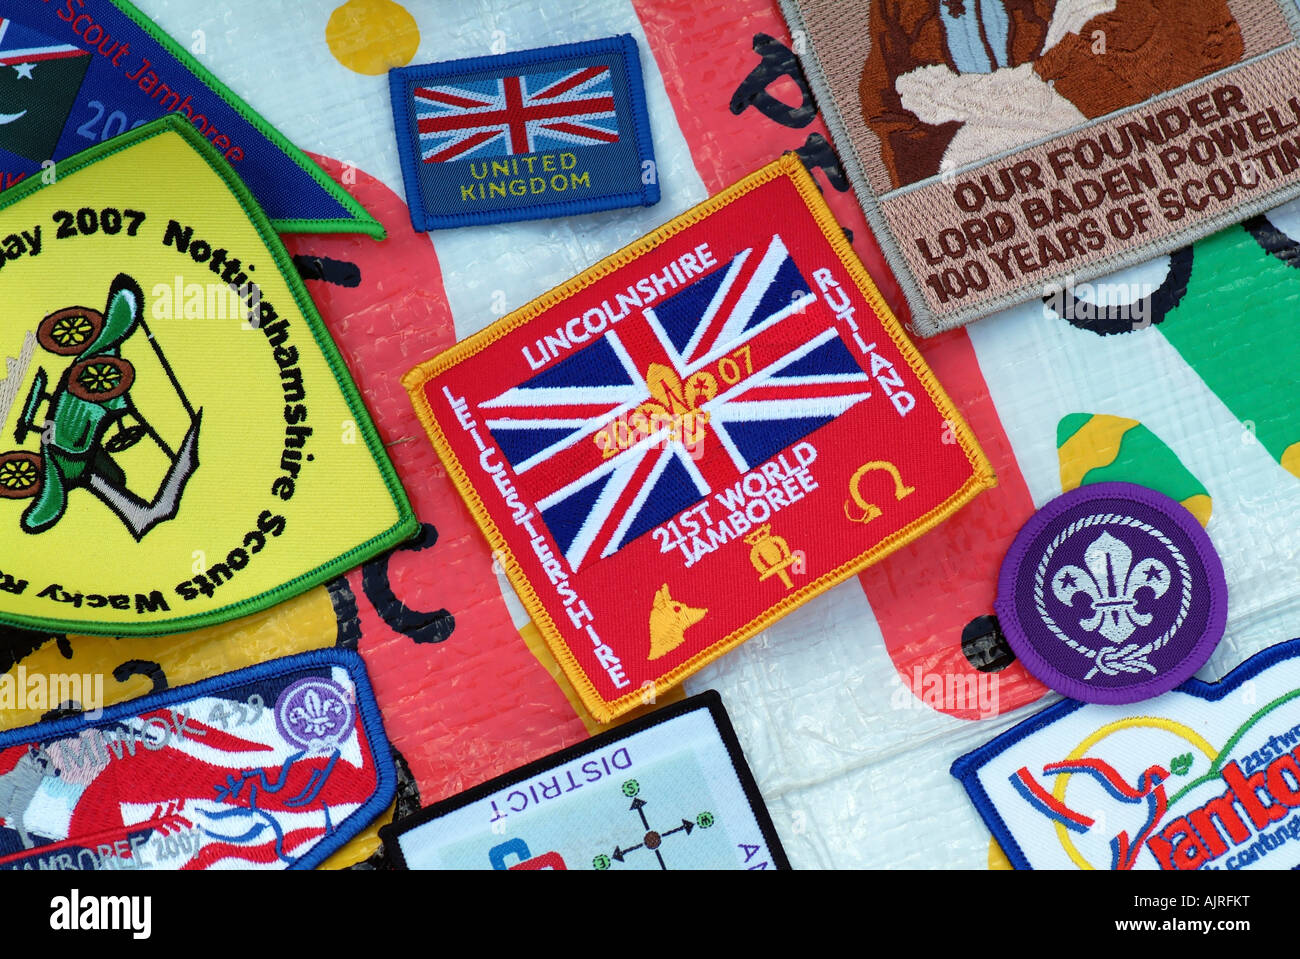 Scout badges - Stock Image